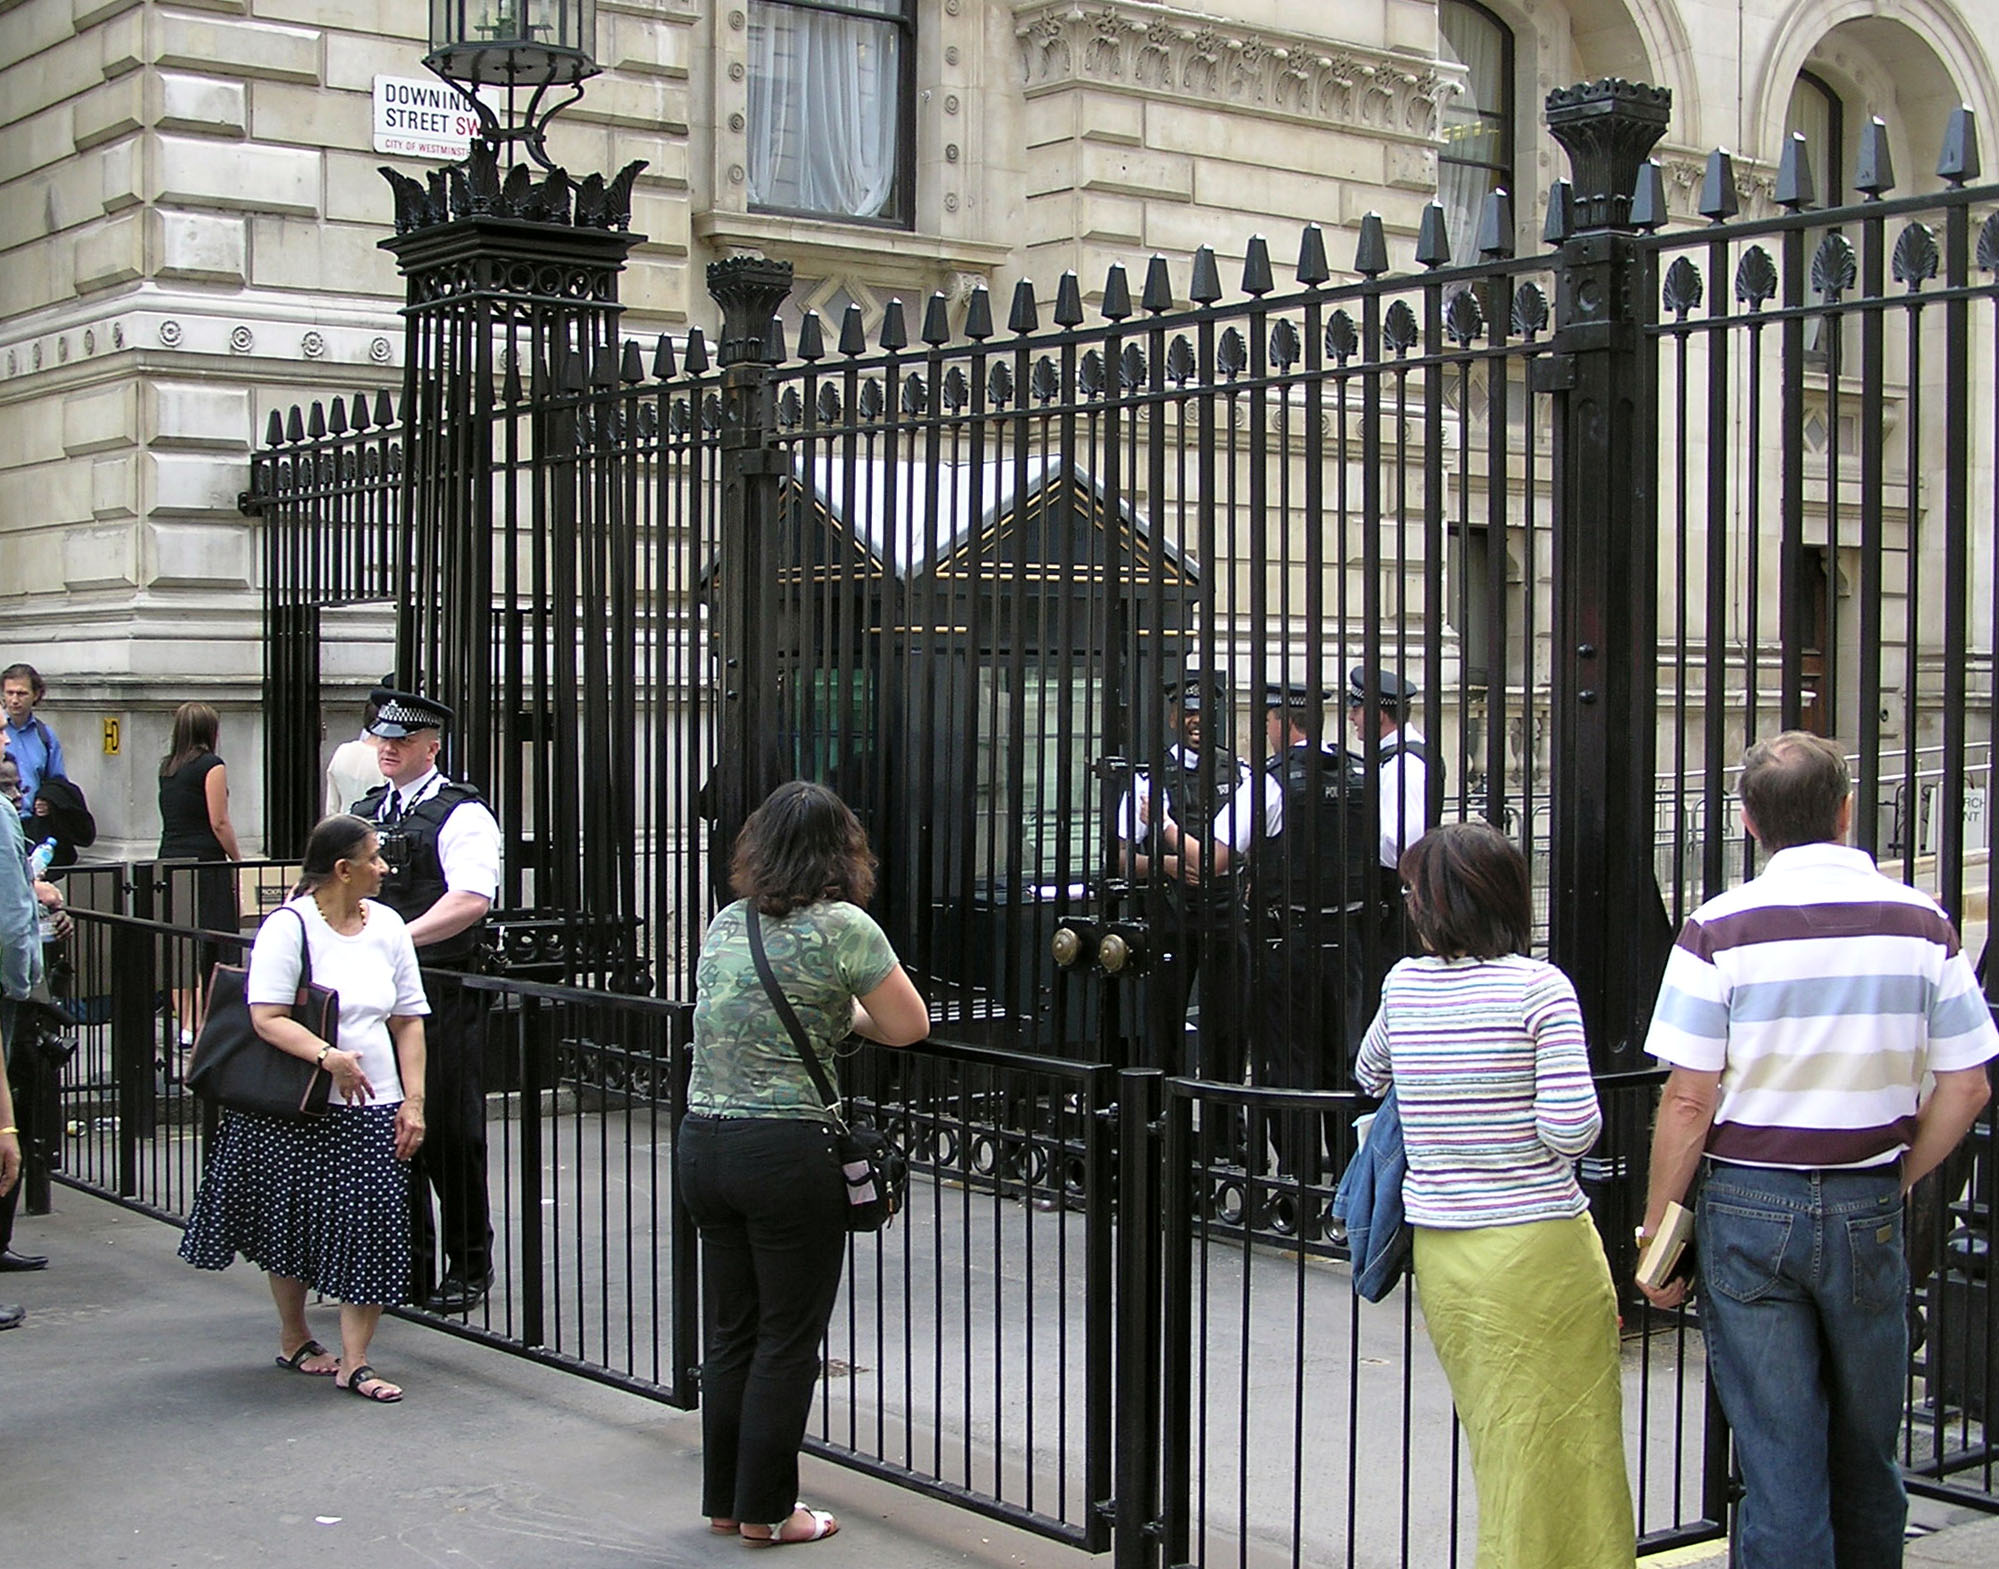 Downing.street.gates.london.arp.jpg